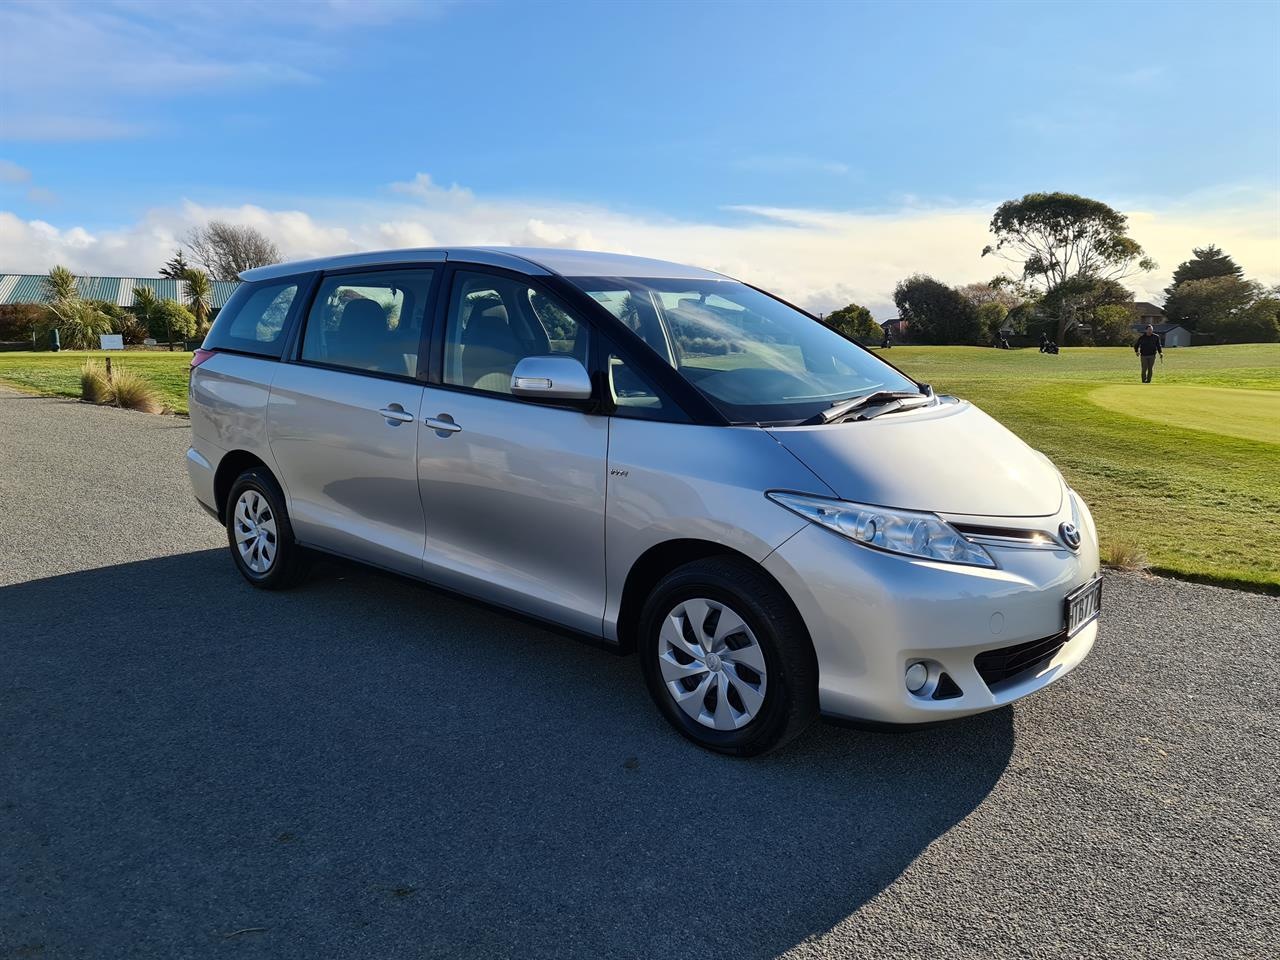 image-0, 2014 Toyota Previa 2.4P NPV CVT at Christchurch